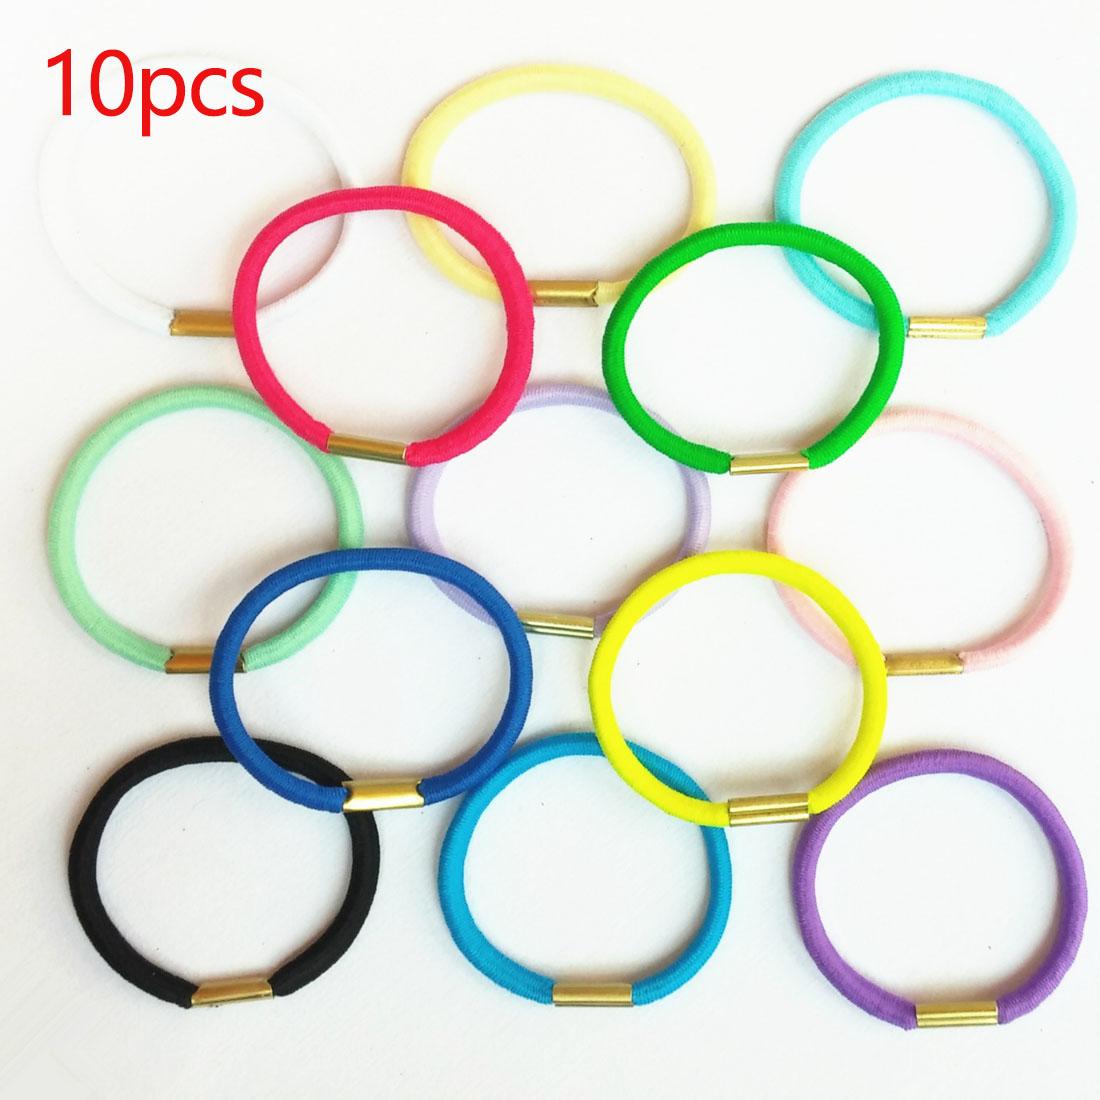 10pcs/lot Lovely Ponytail Holder Hair Accessories Girls Black Elastic Hair Rubber Bands Hair Ropes Hairdress Tie Gums Superior (In) Quality